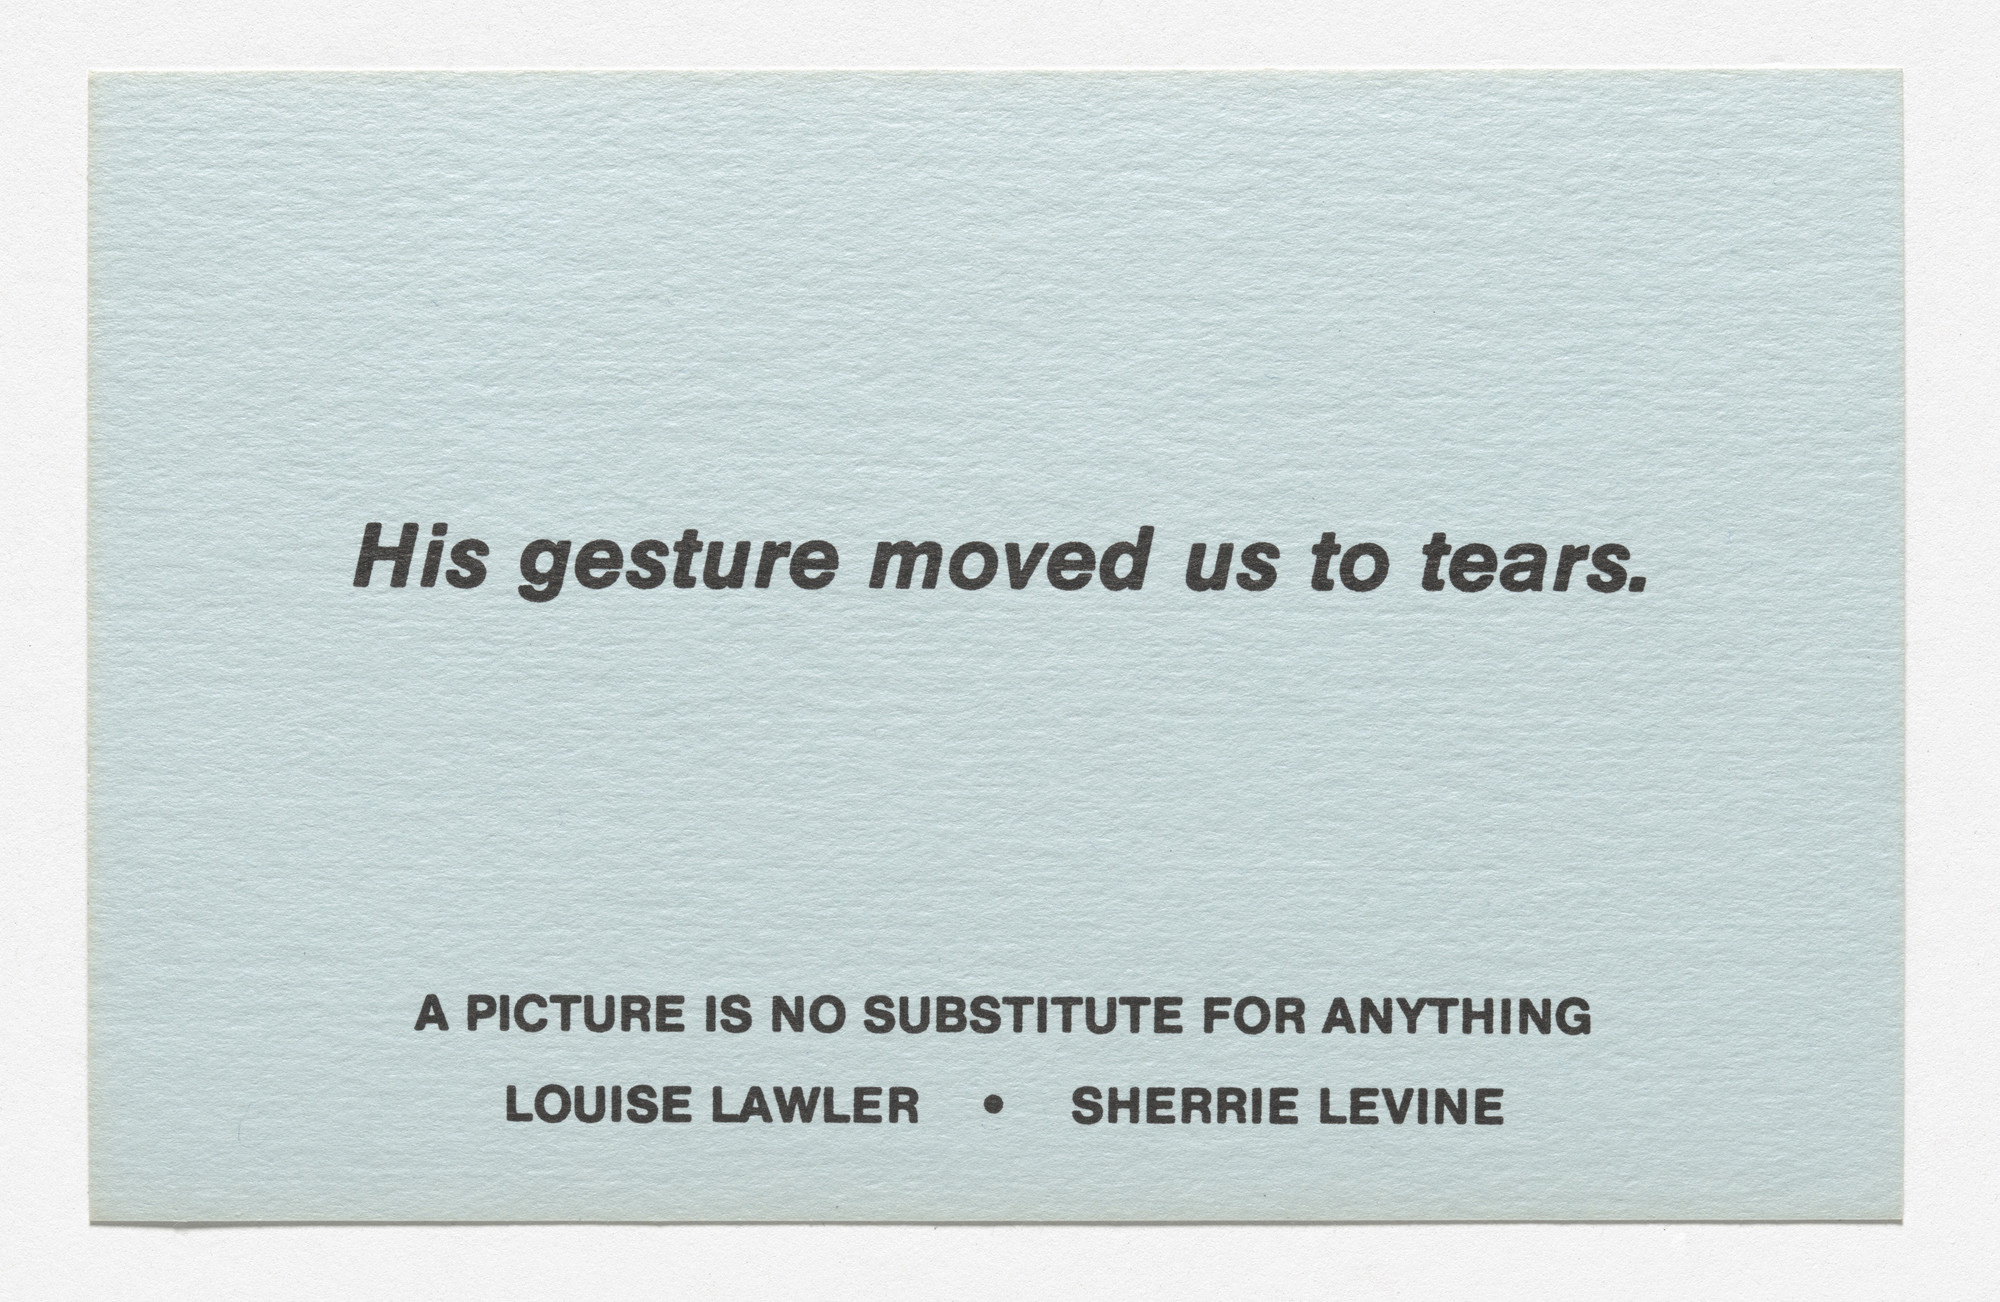 Louise Lawler, Sherrie Levine. Announcement card for A Picture Is No Substitute for Anything, James Turcotte Gallery, Los Angeles, April 6, 1982. 1982